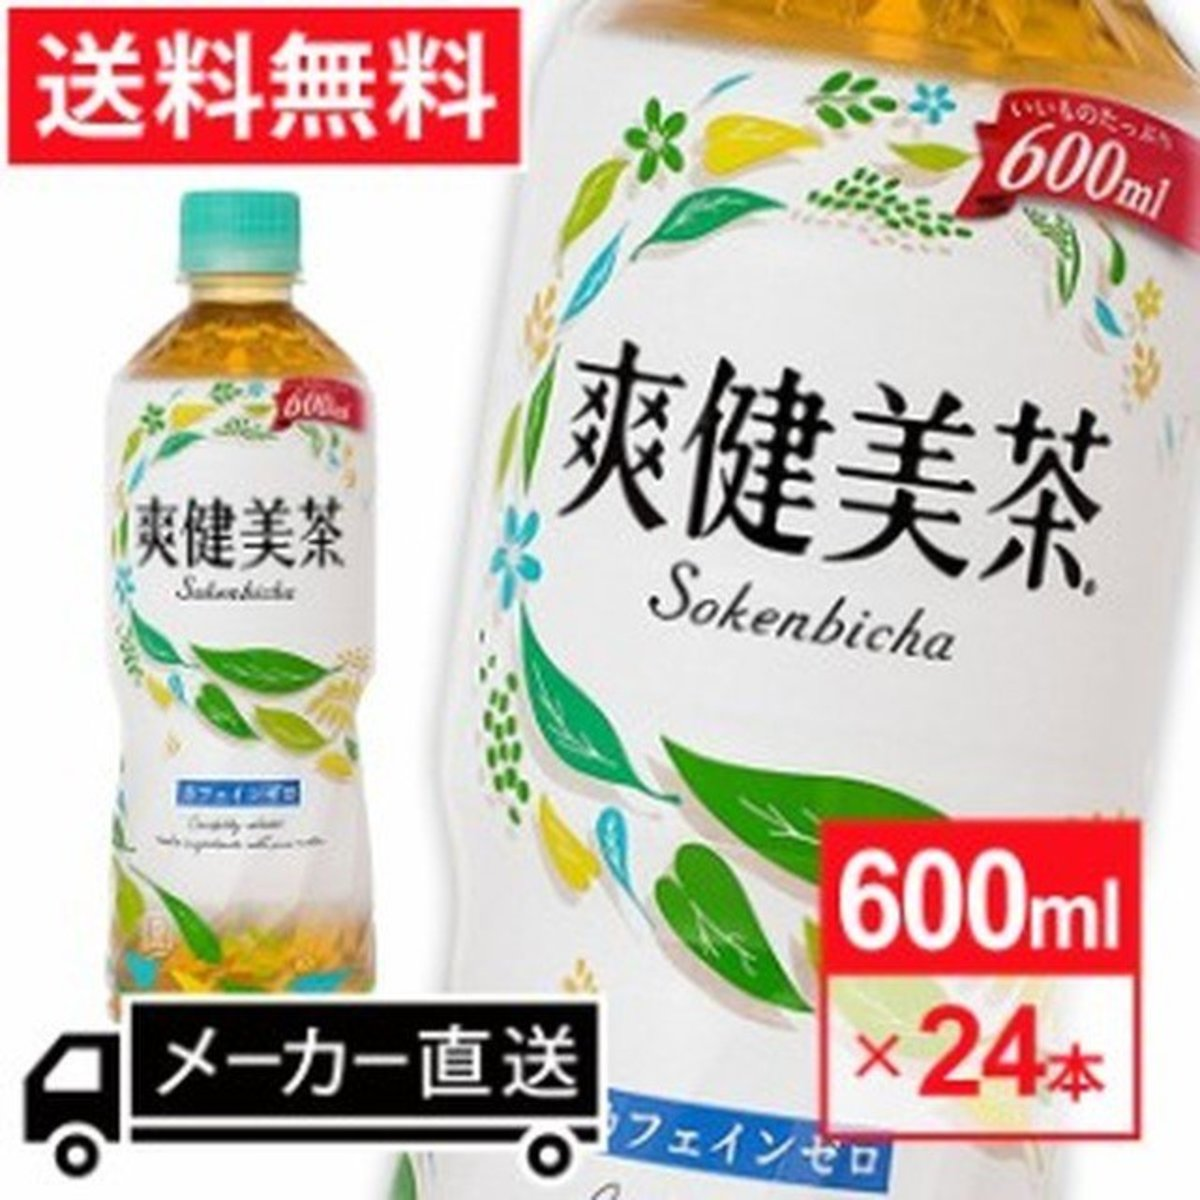 [full box] Non-Caffeine Sokenbicha 600ml x 24 4902102119450